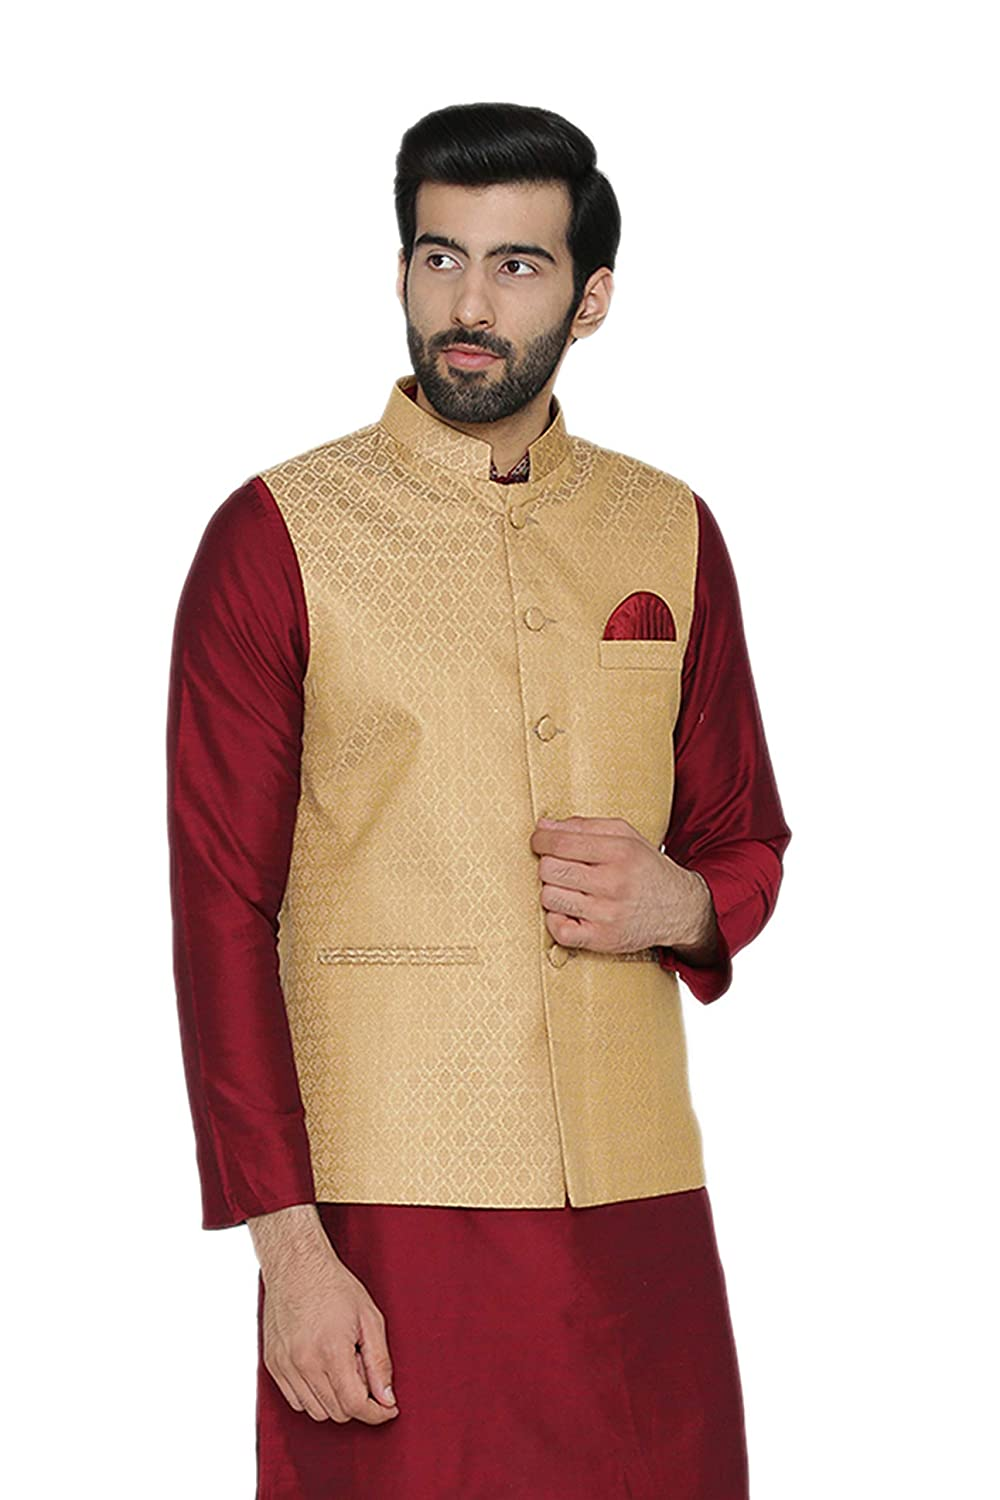 WINTAGE Men's Banarasi Art Silk Cotton Blend Festive and Casual Nehru Jacket Vest Waistcoat